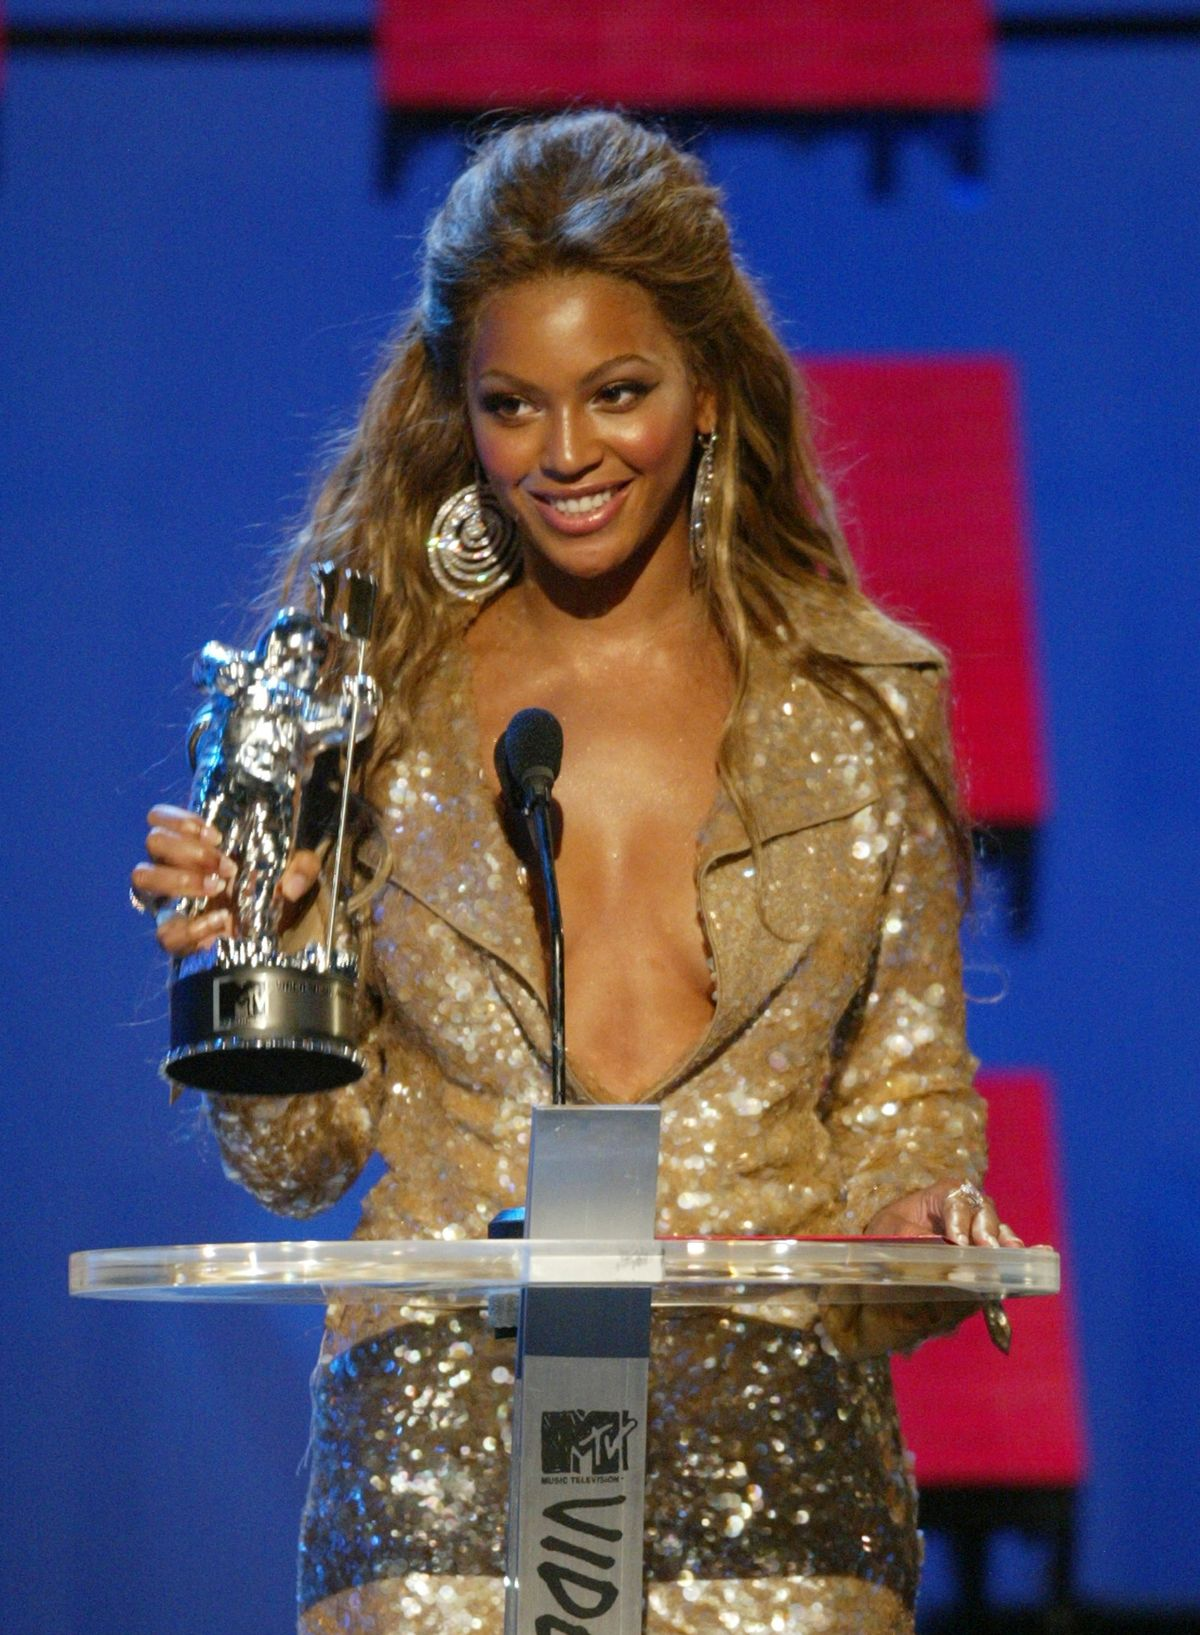 Beyonce Knowles wins the award for Best R&B Video, her first of three awards for the evening at the 2003 MTV Video Music Awards. (Photo by Kevin Kane/WireImage)